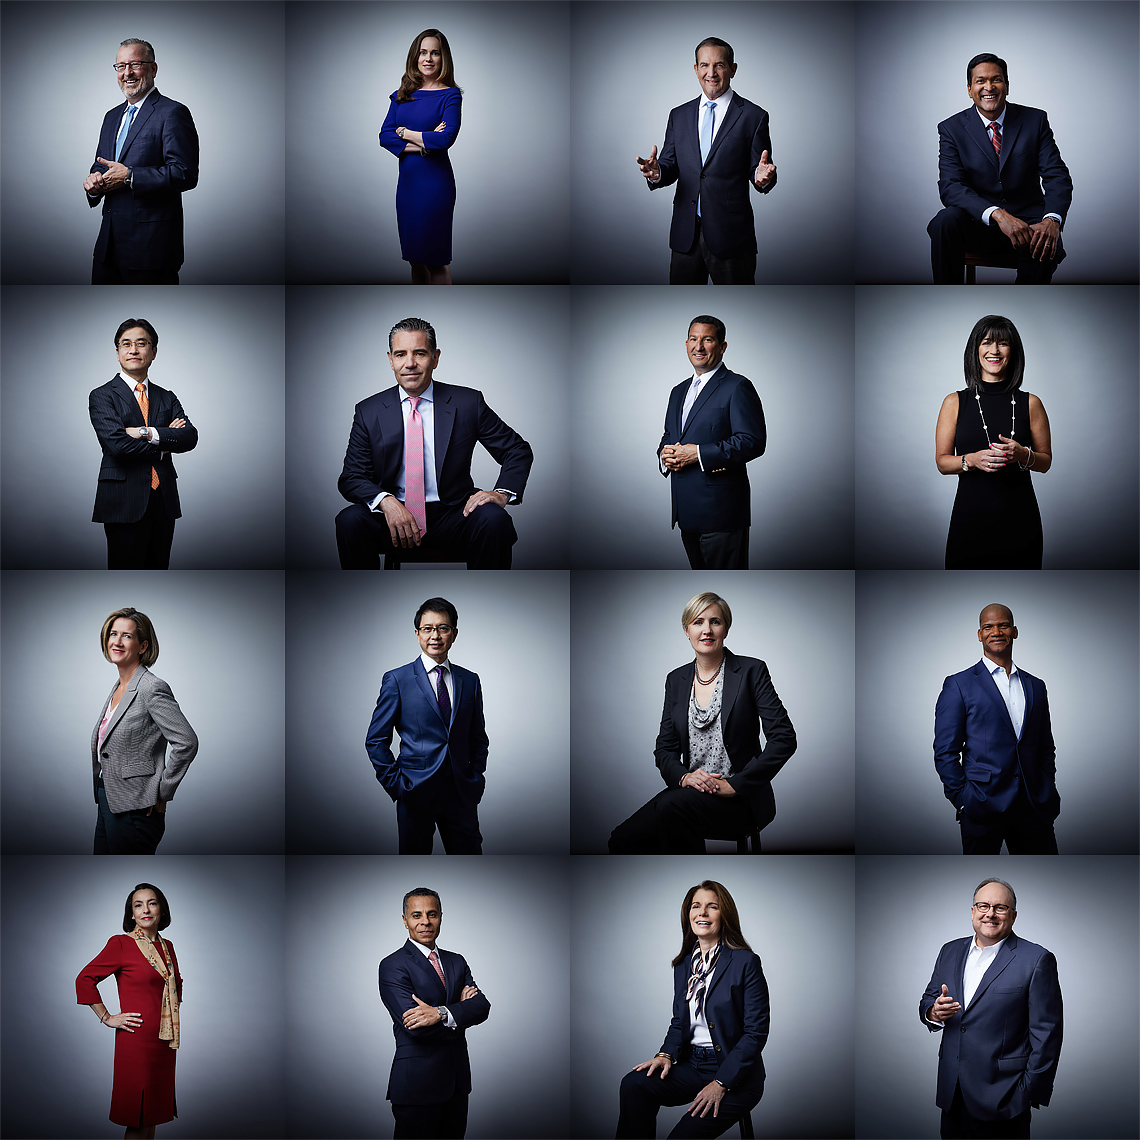 MFS Investment Management & Executive Team • Executive Portraits